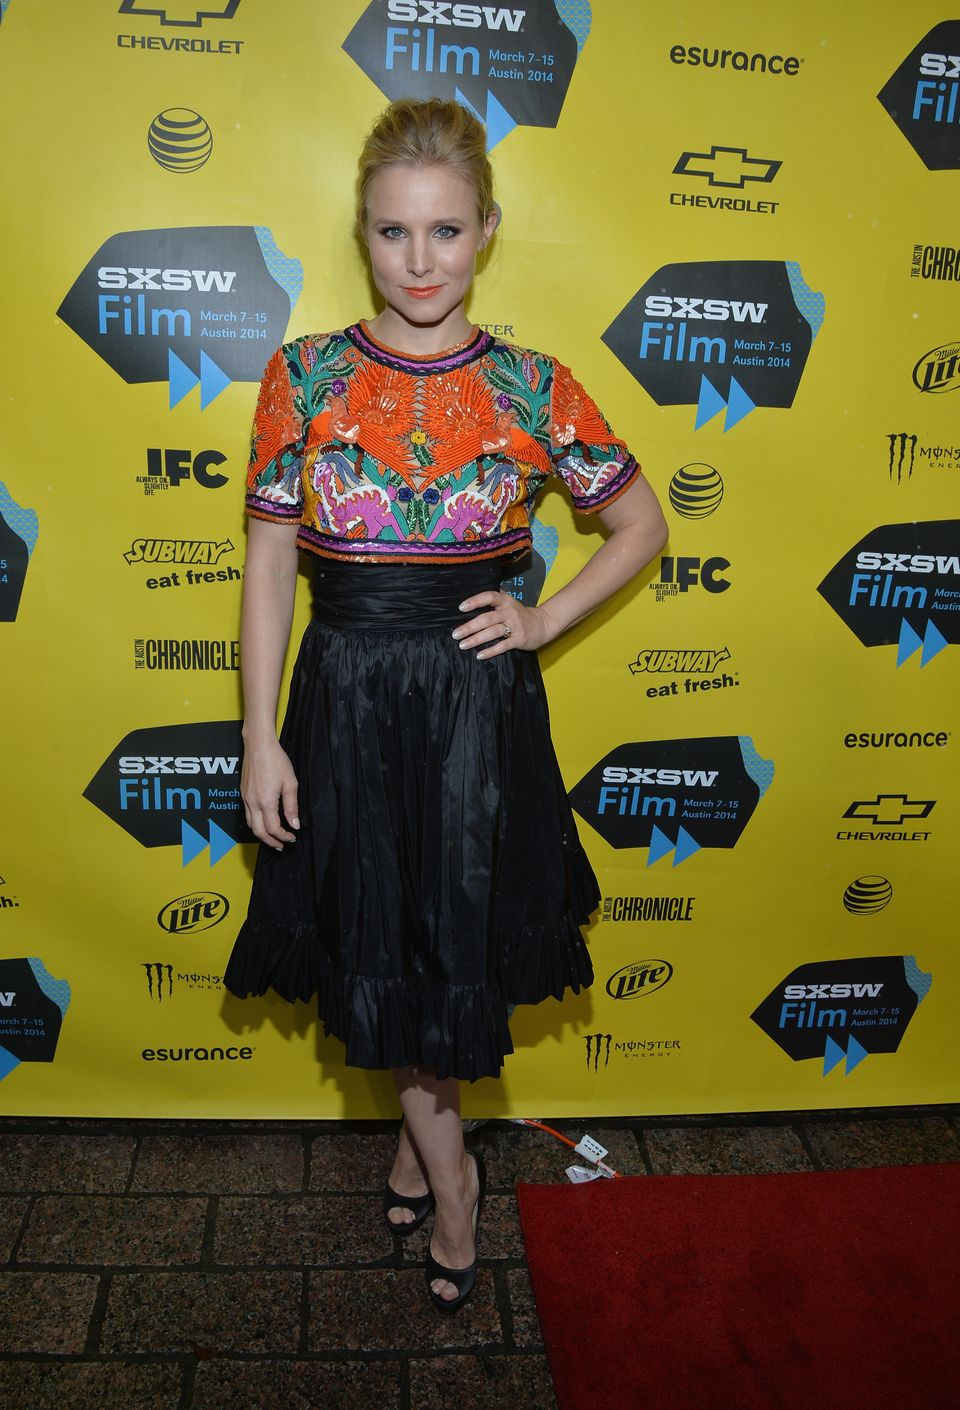 AUSTIN, TX - MARCH 08:  Actress Kristen Bell arrives at the premiere of 'Veronica Mars' during the 2014 SXSW Music, Film + In